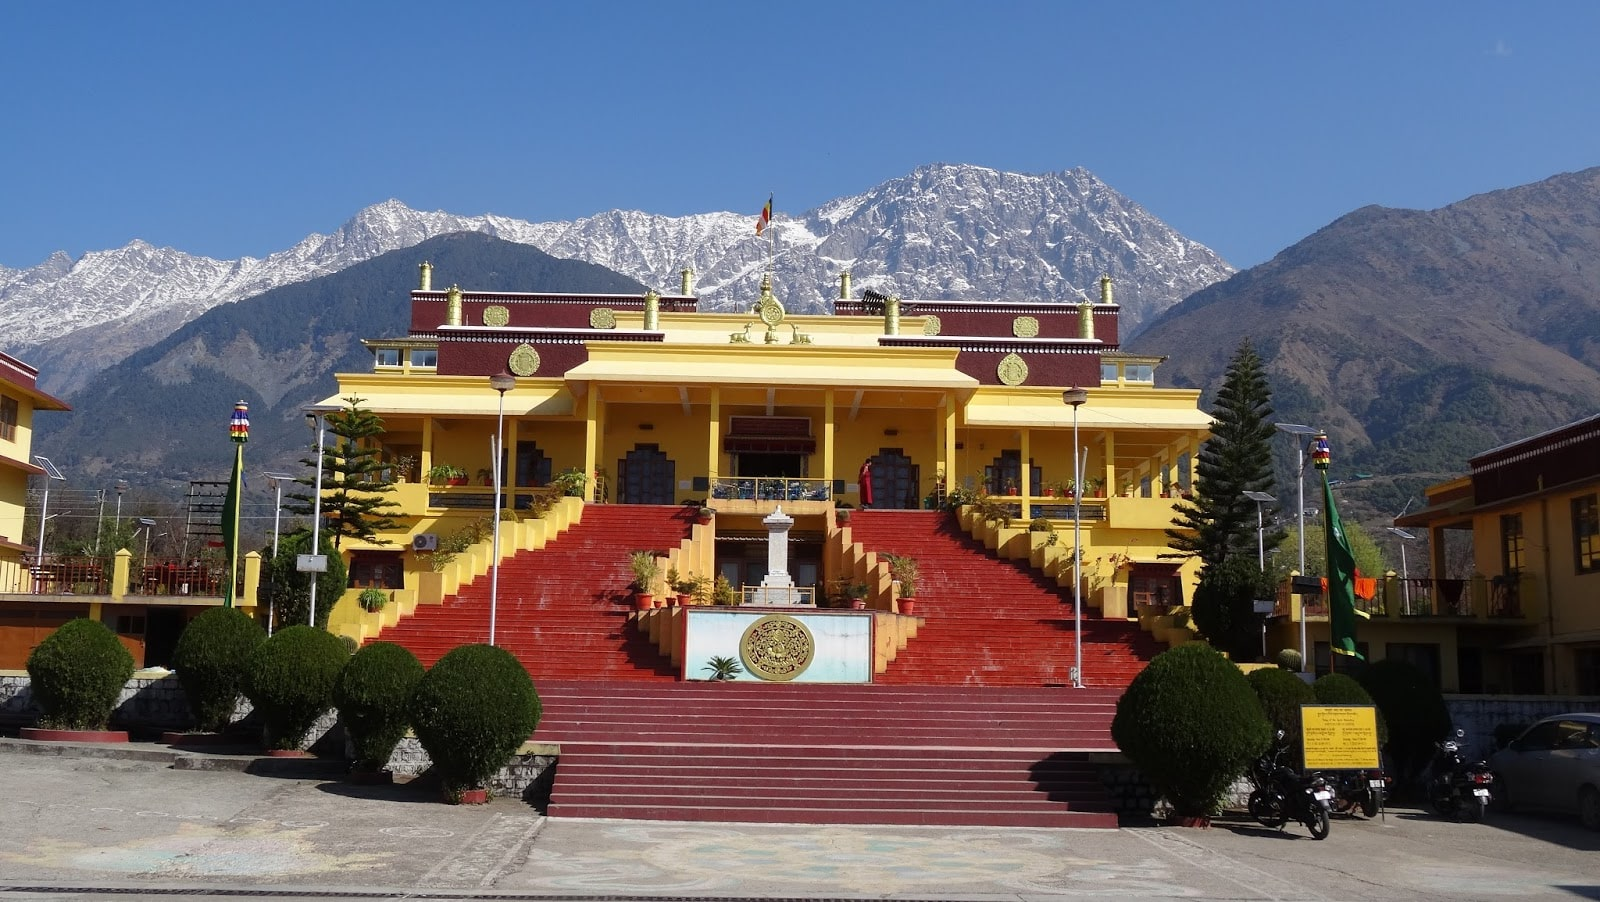 ग्यूतो मठ, Gyuto Tantric Monastery Temple is one of the tourist places in Dharamshala